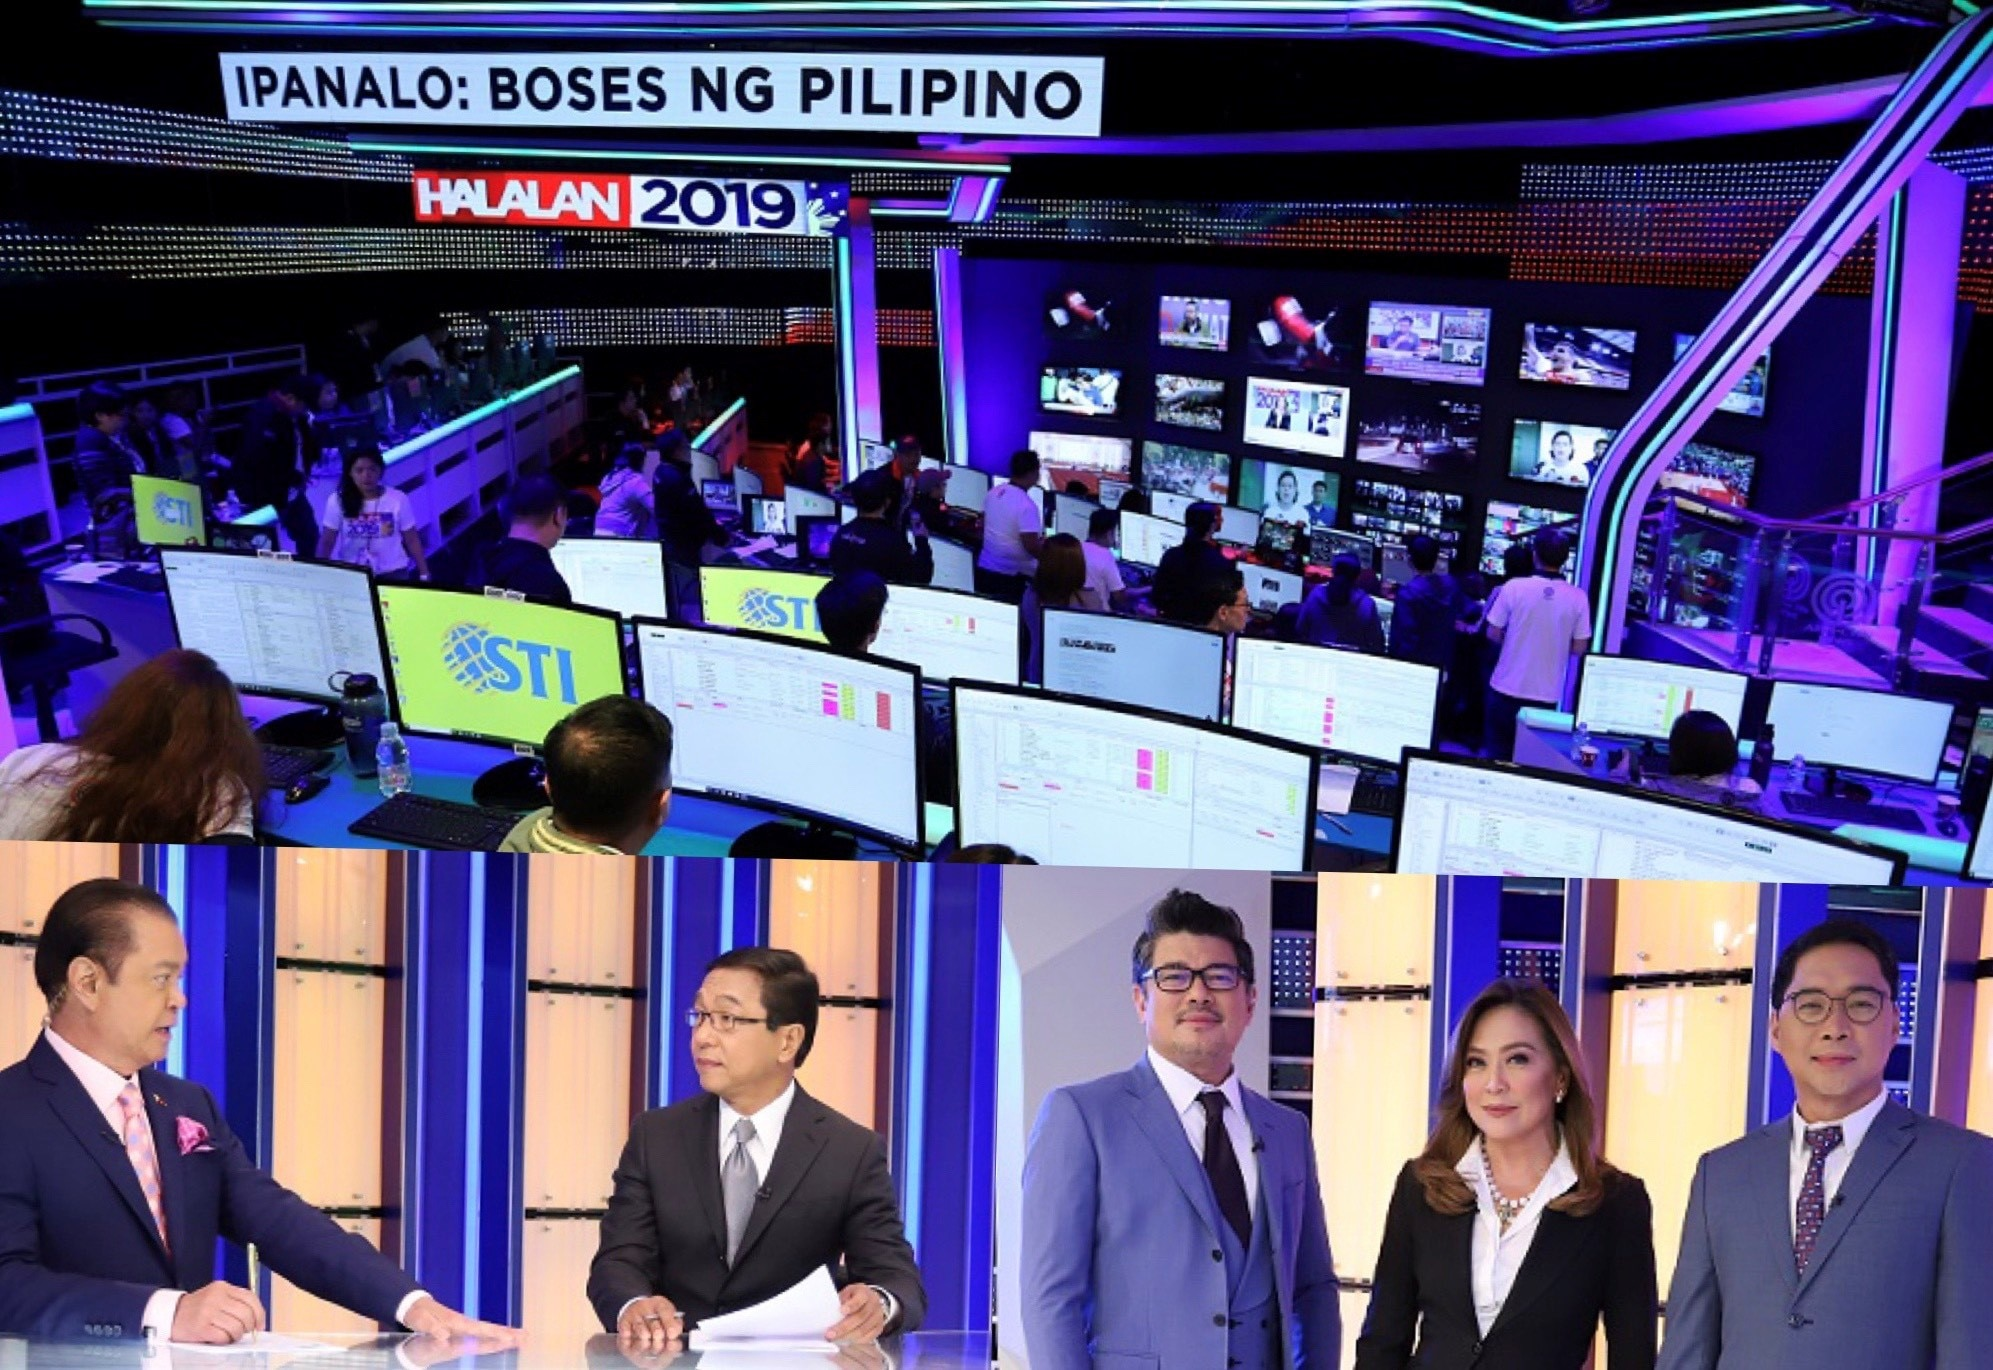 Alvin Purple Tv Series Download abs-cbn news delivers most watched election coverage on tv